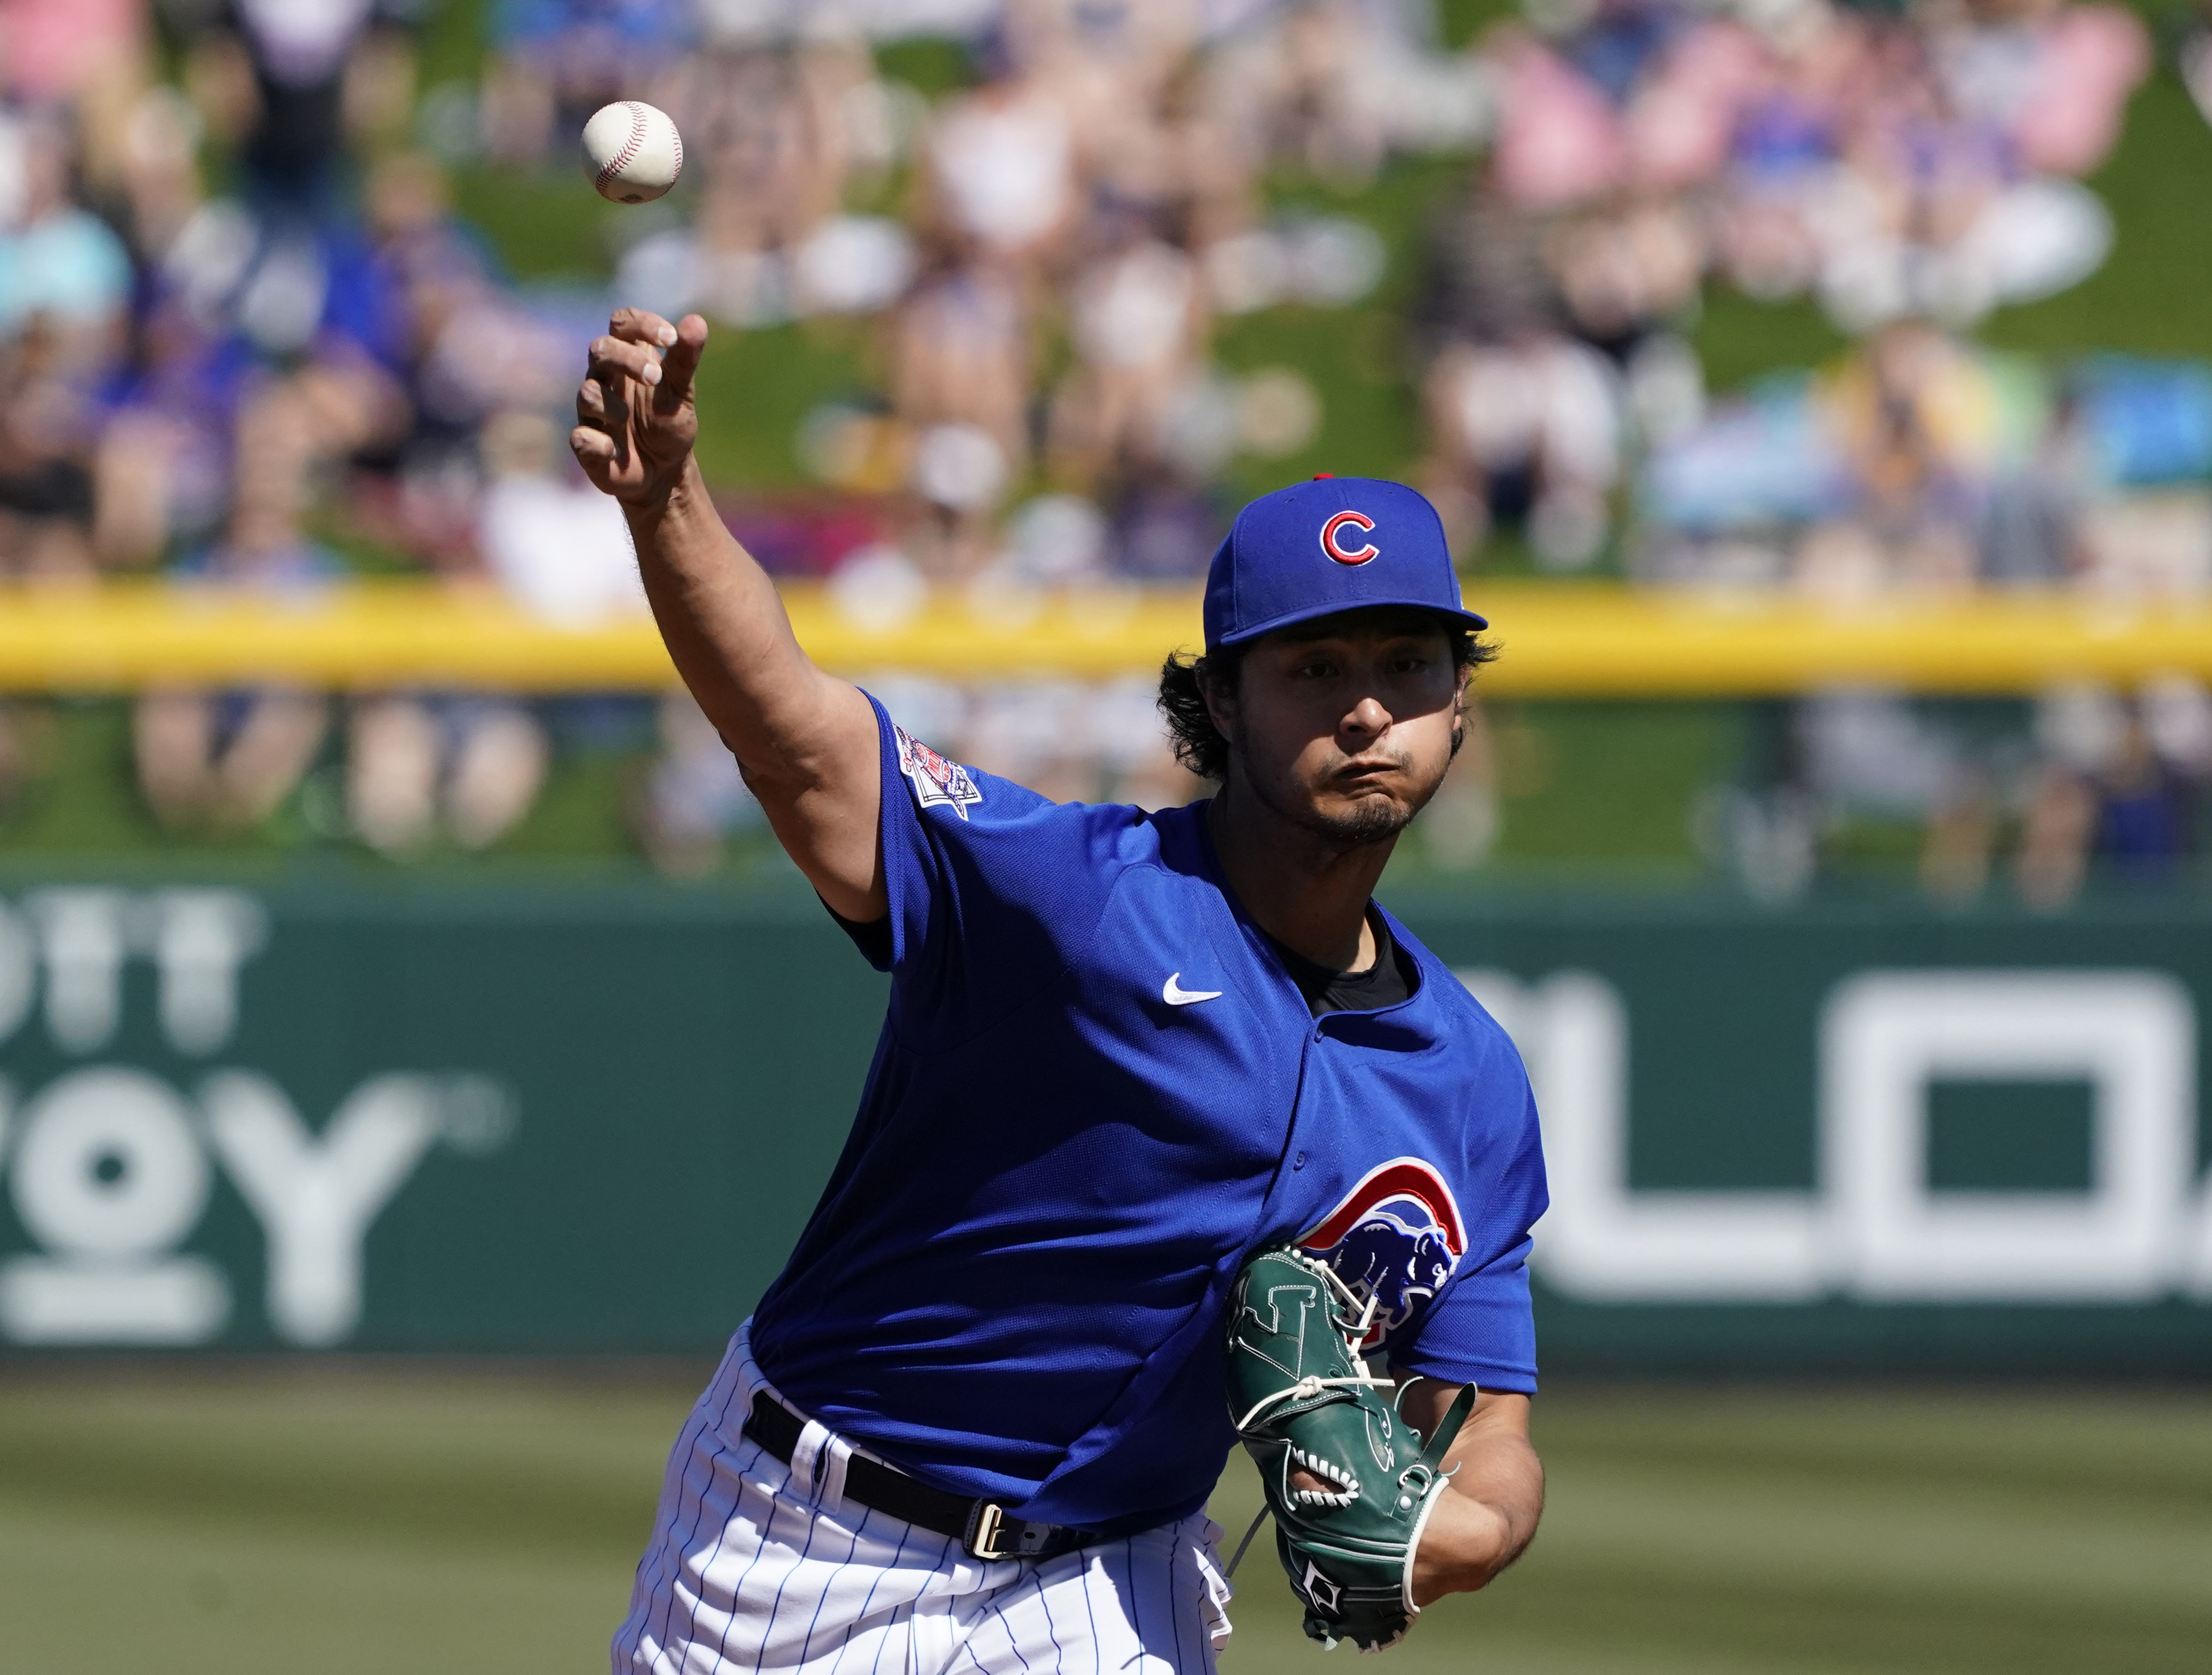 Yu Darvish raises eyebrows with funny joke about taking PEDs